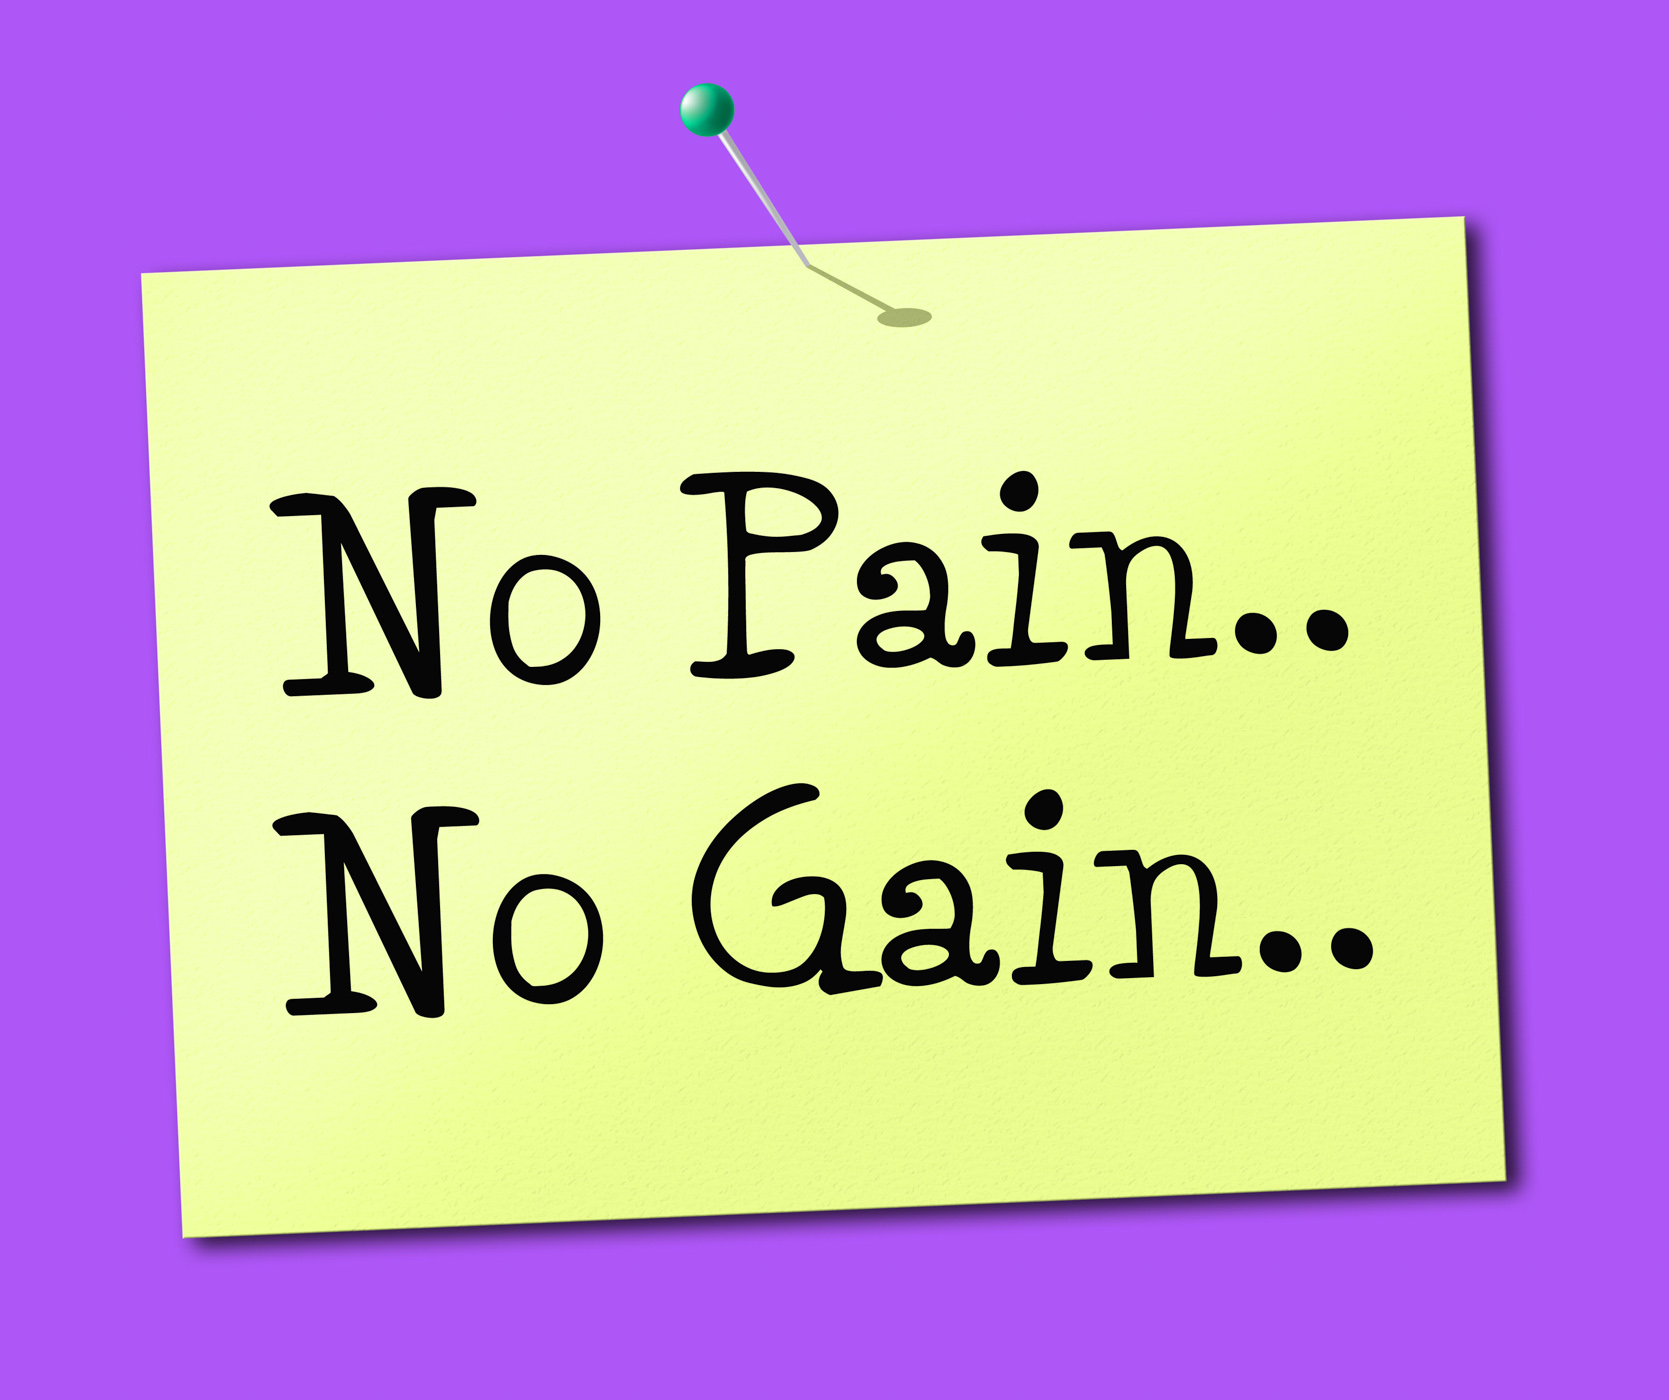 No pain gain represents making it happen and success photo